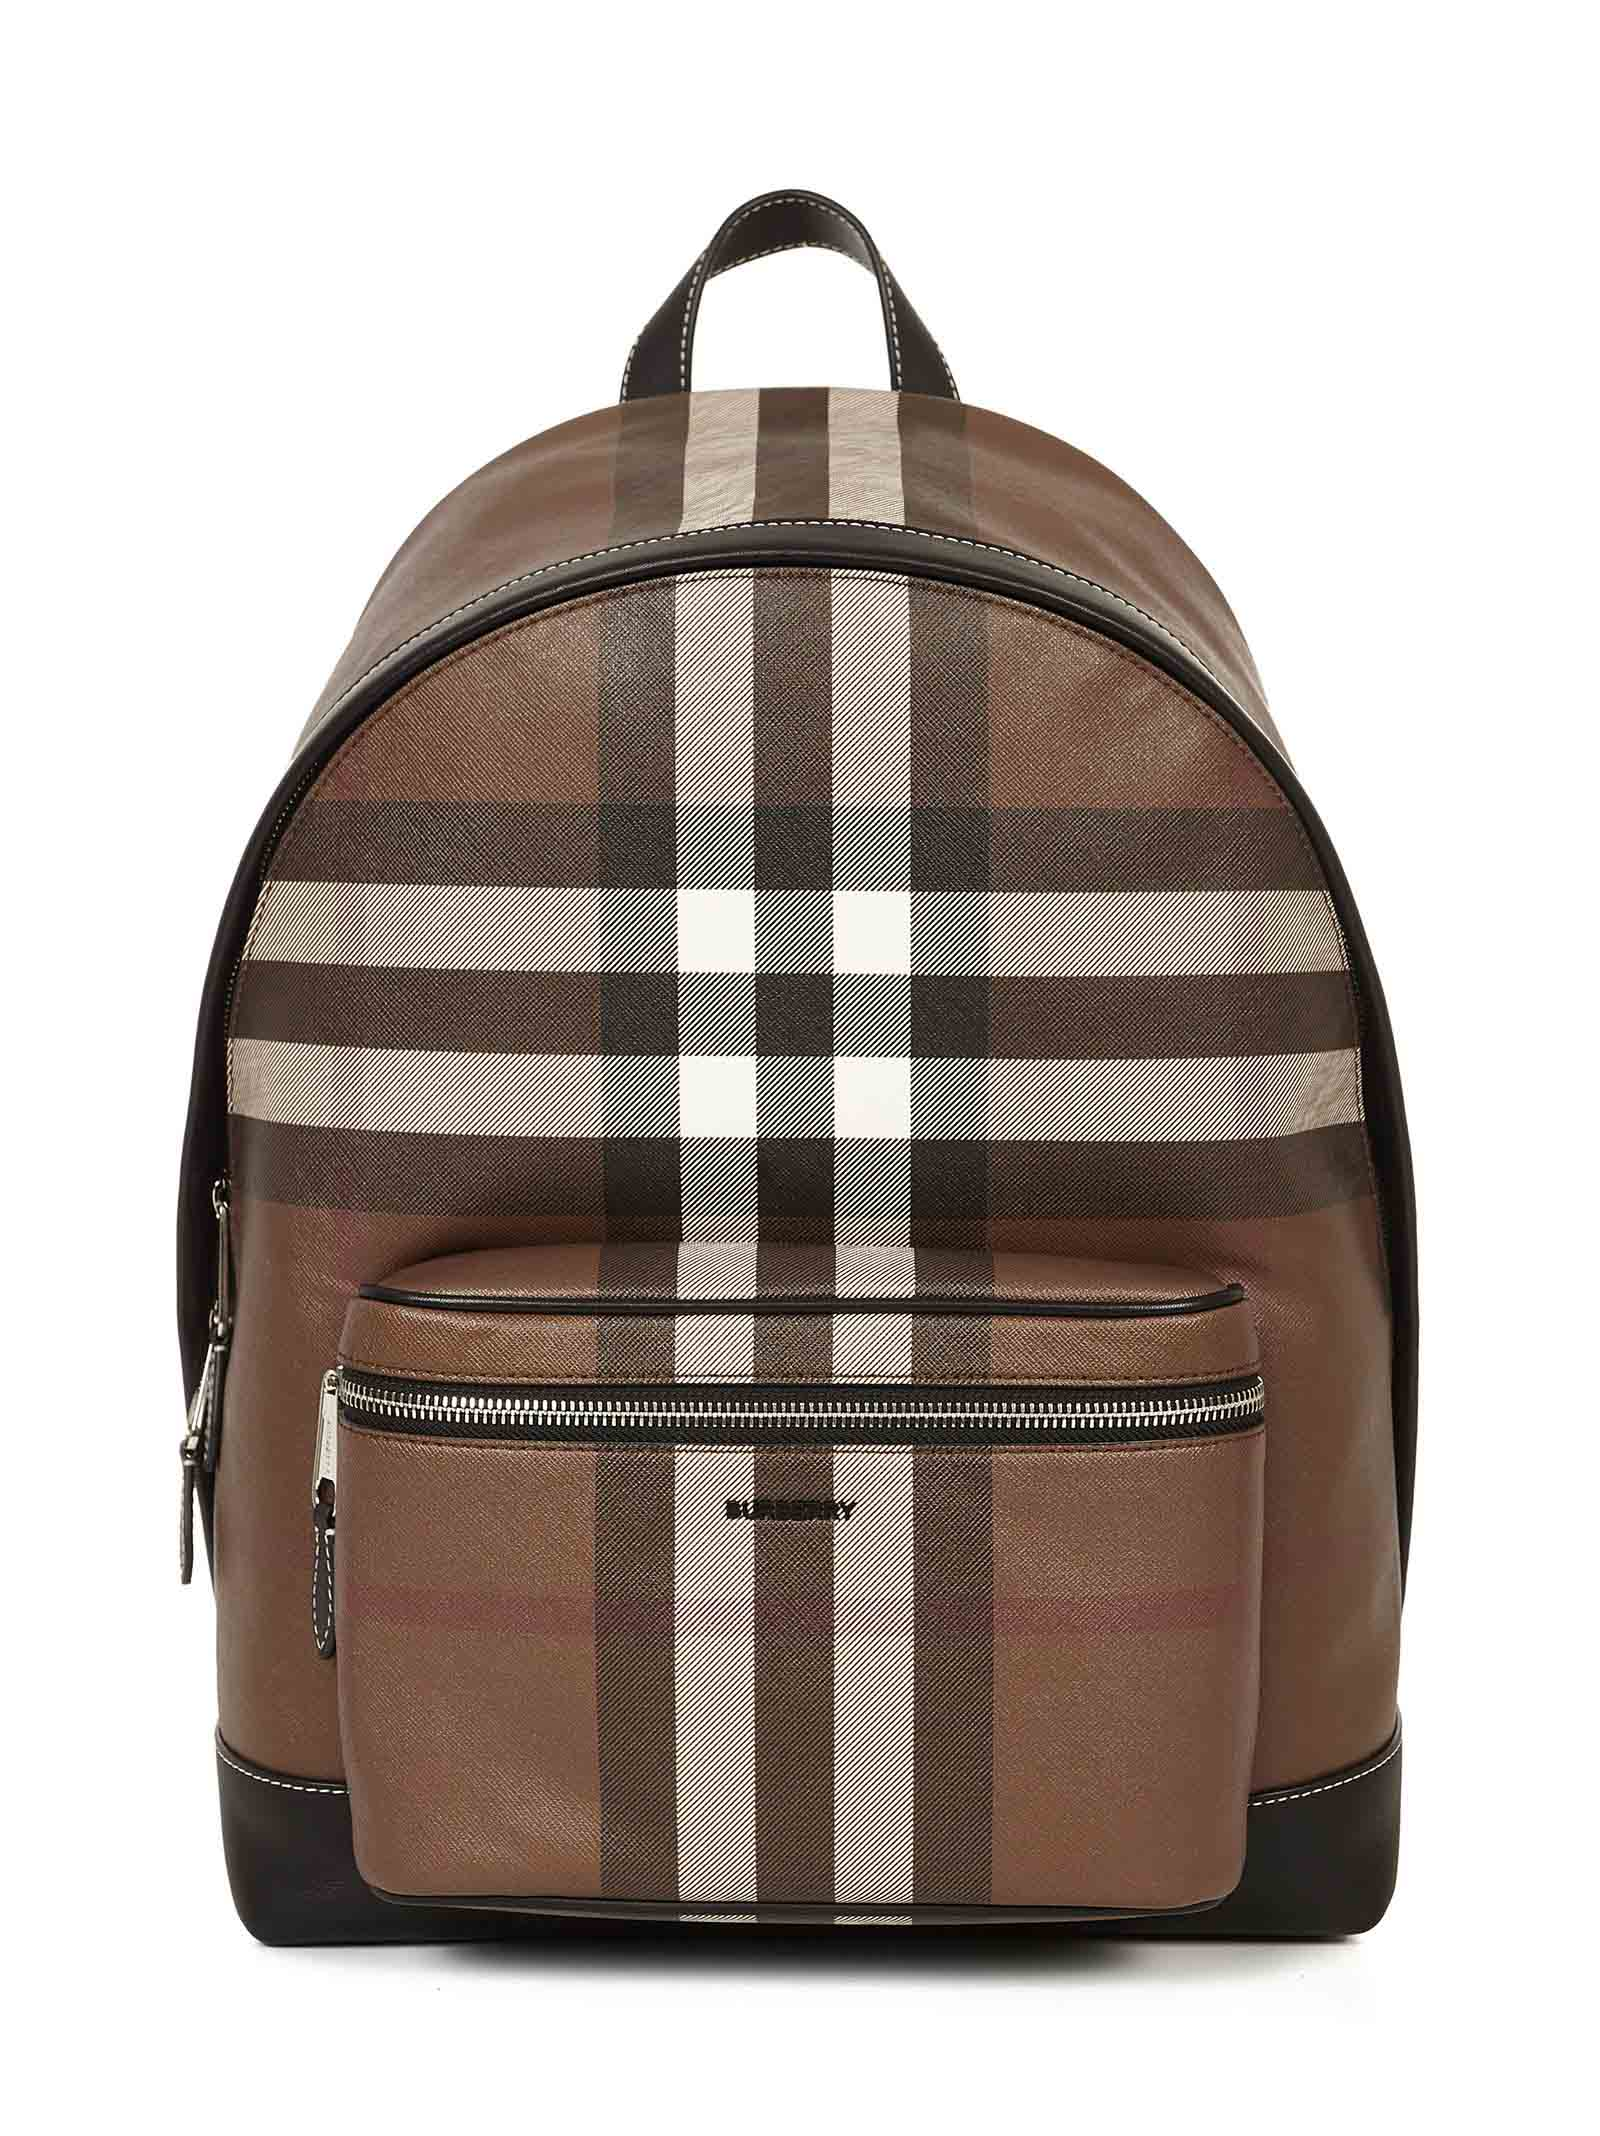 Burberry Men's Rucksack Backpack Travel In Brown